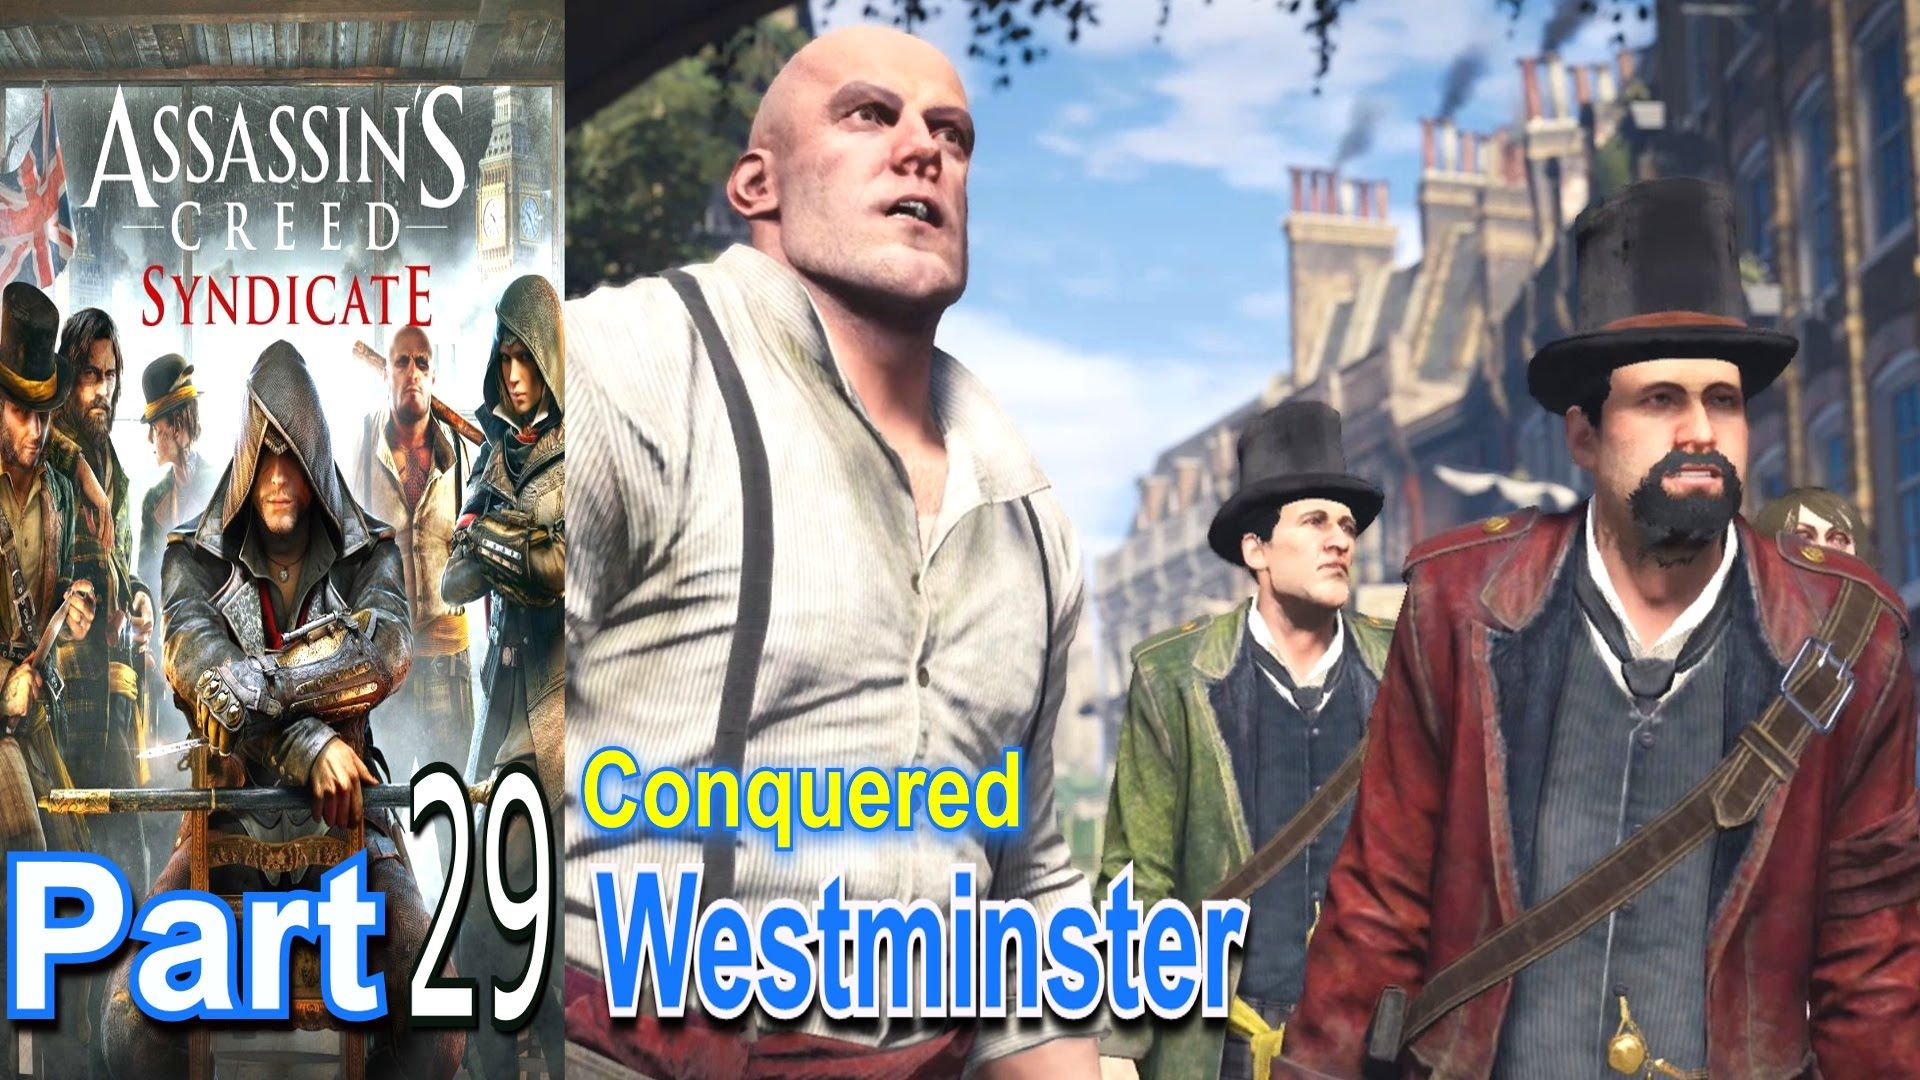 Westminster Assassins Creed Syndicate Part 29 Conquered